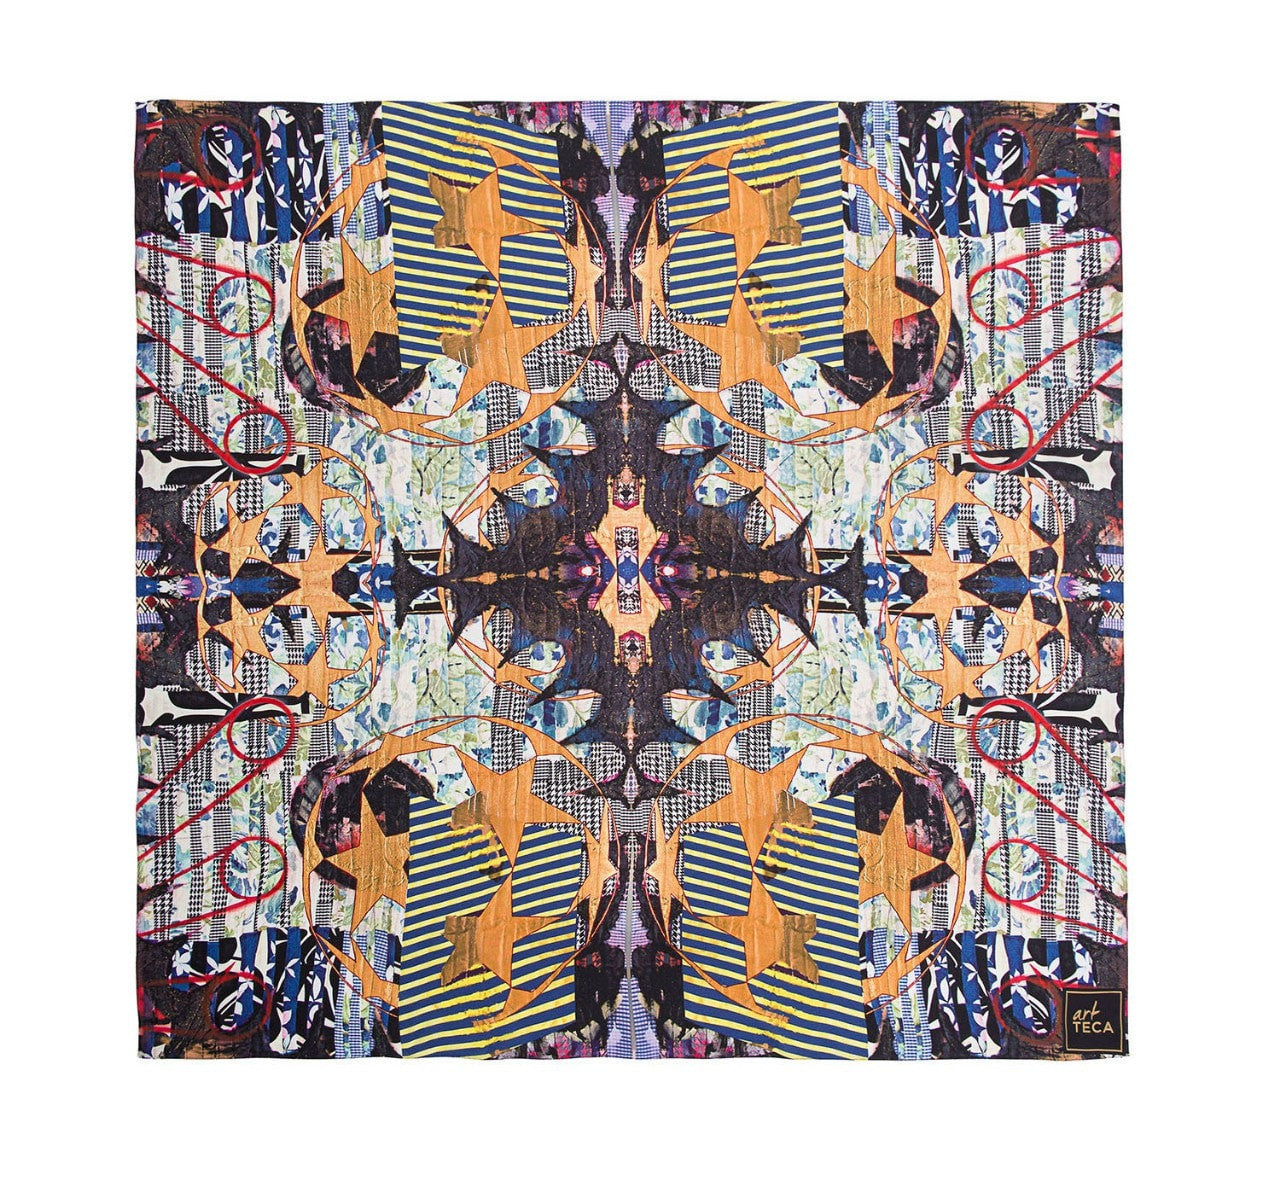 Extended view of limited edition silk scarf designed by New York artist Sanford Biggers